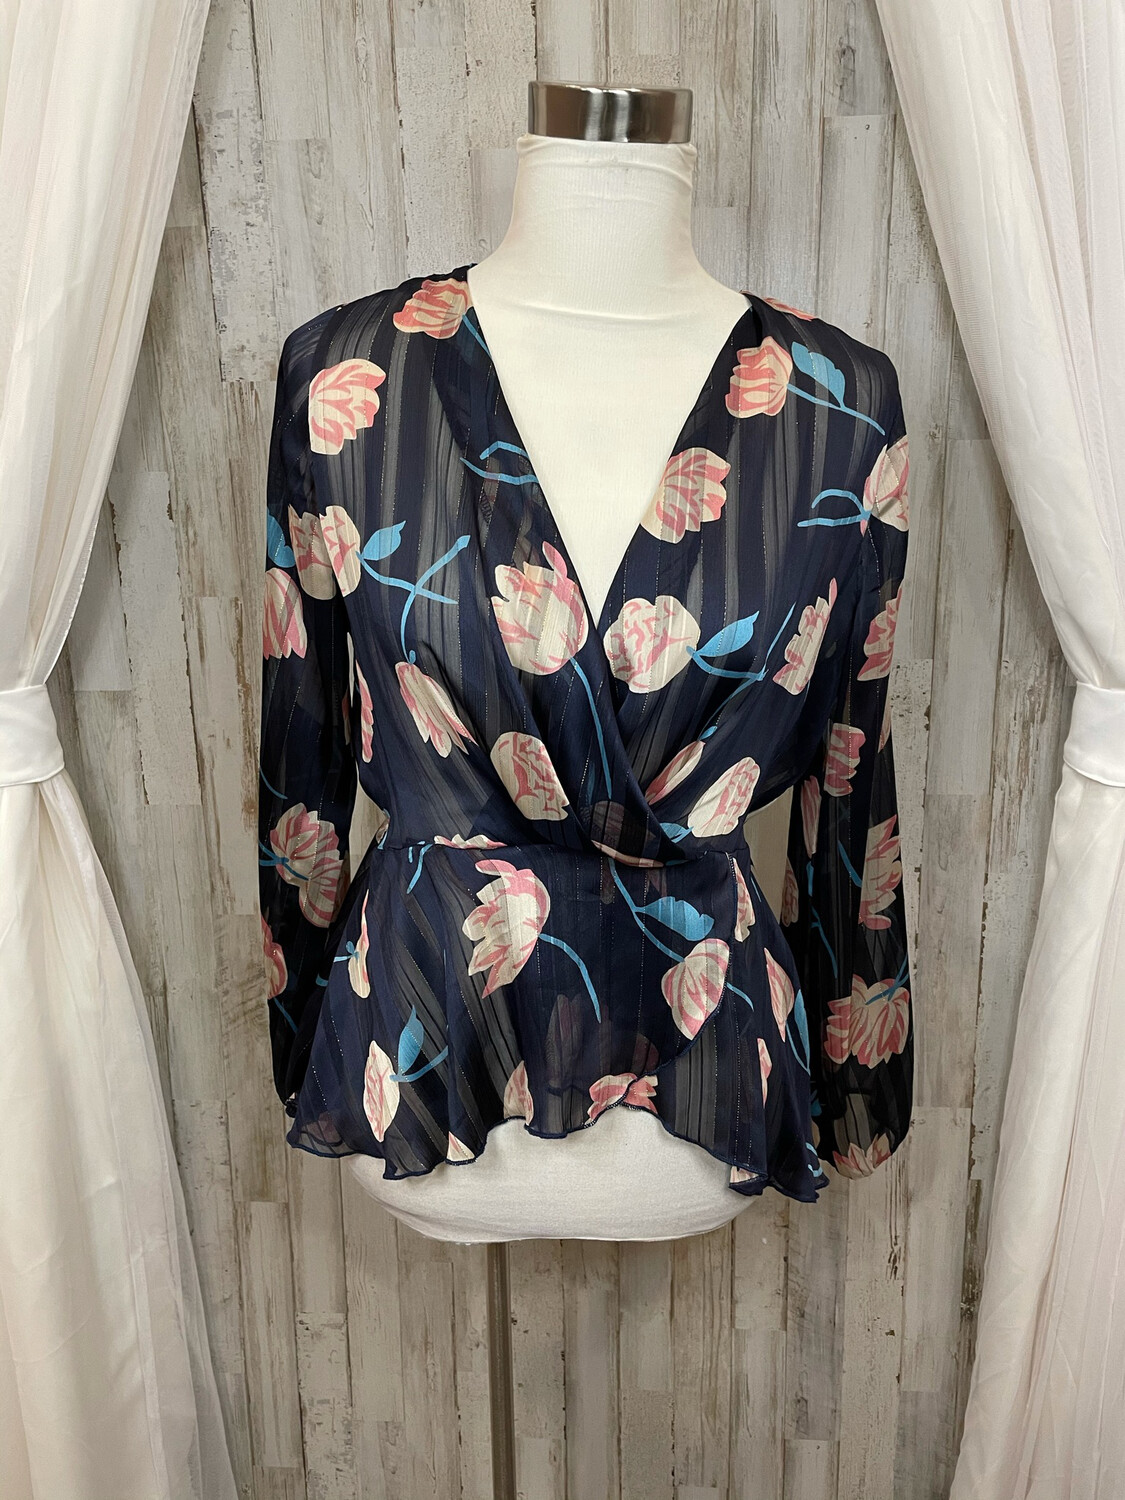 Westmoon Navy Sheer Floral Blouse - S